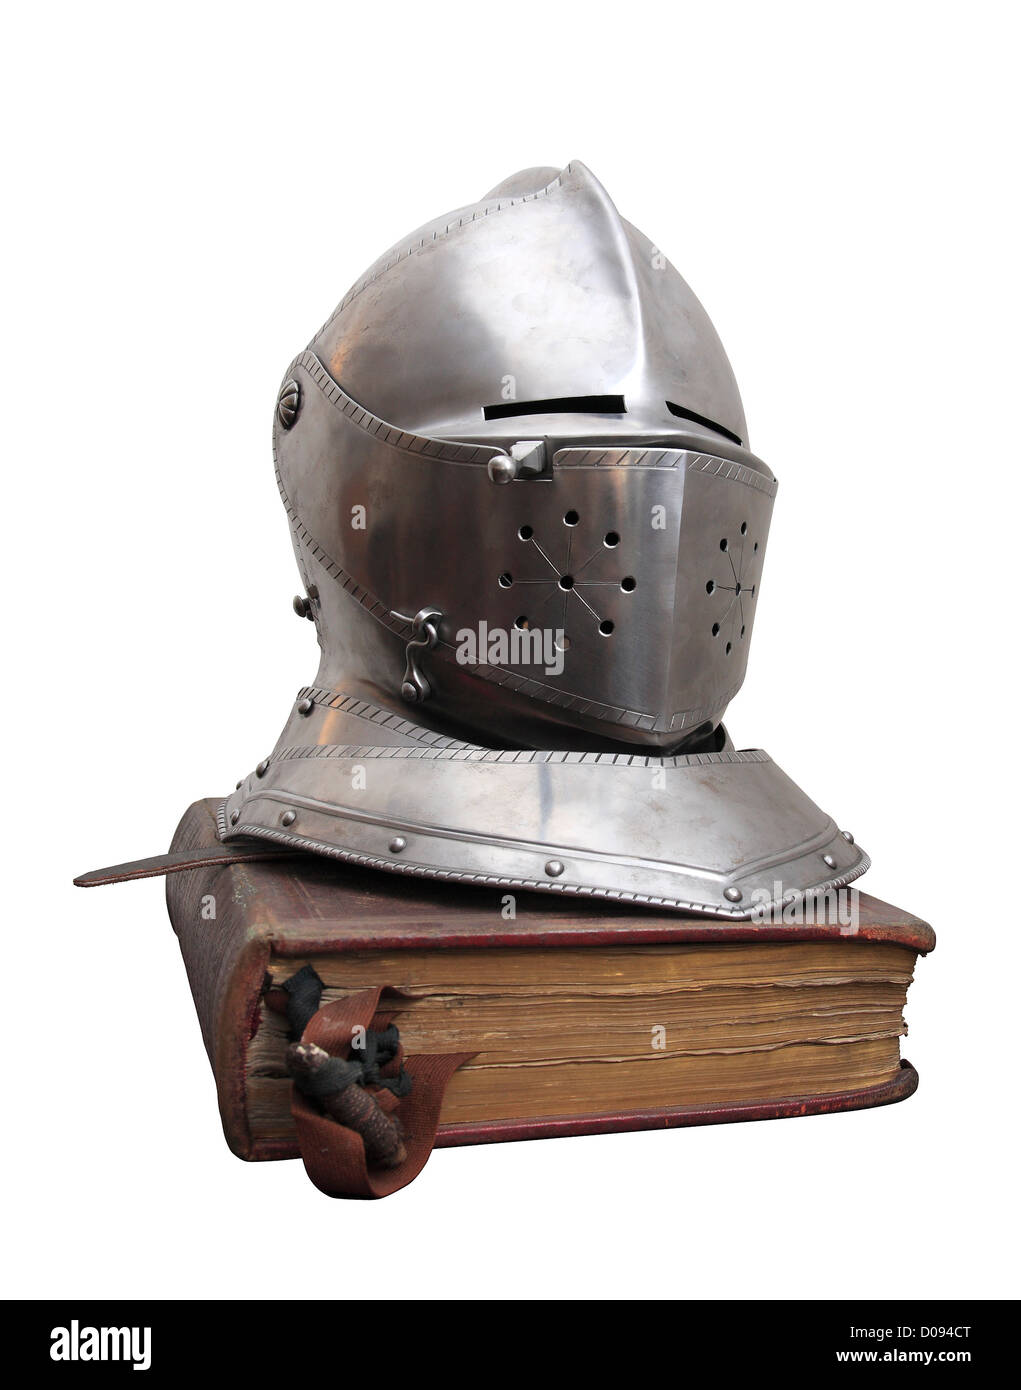 A knight's helmet on an old book. - Stock Image